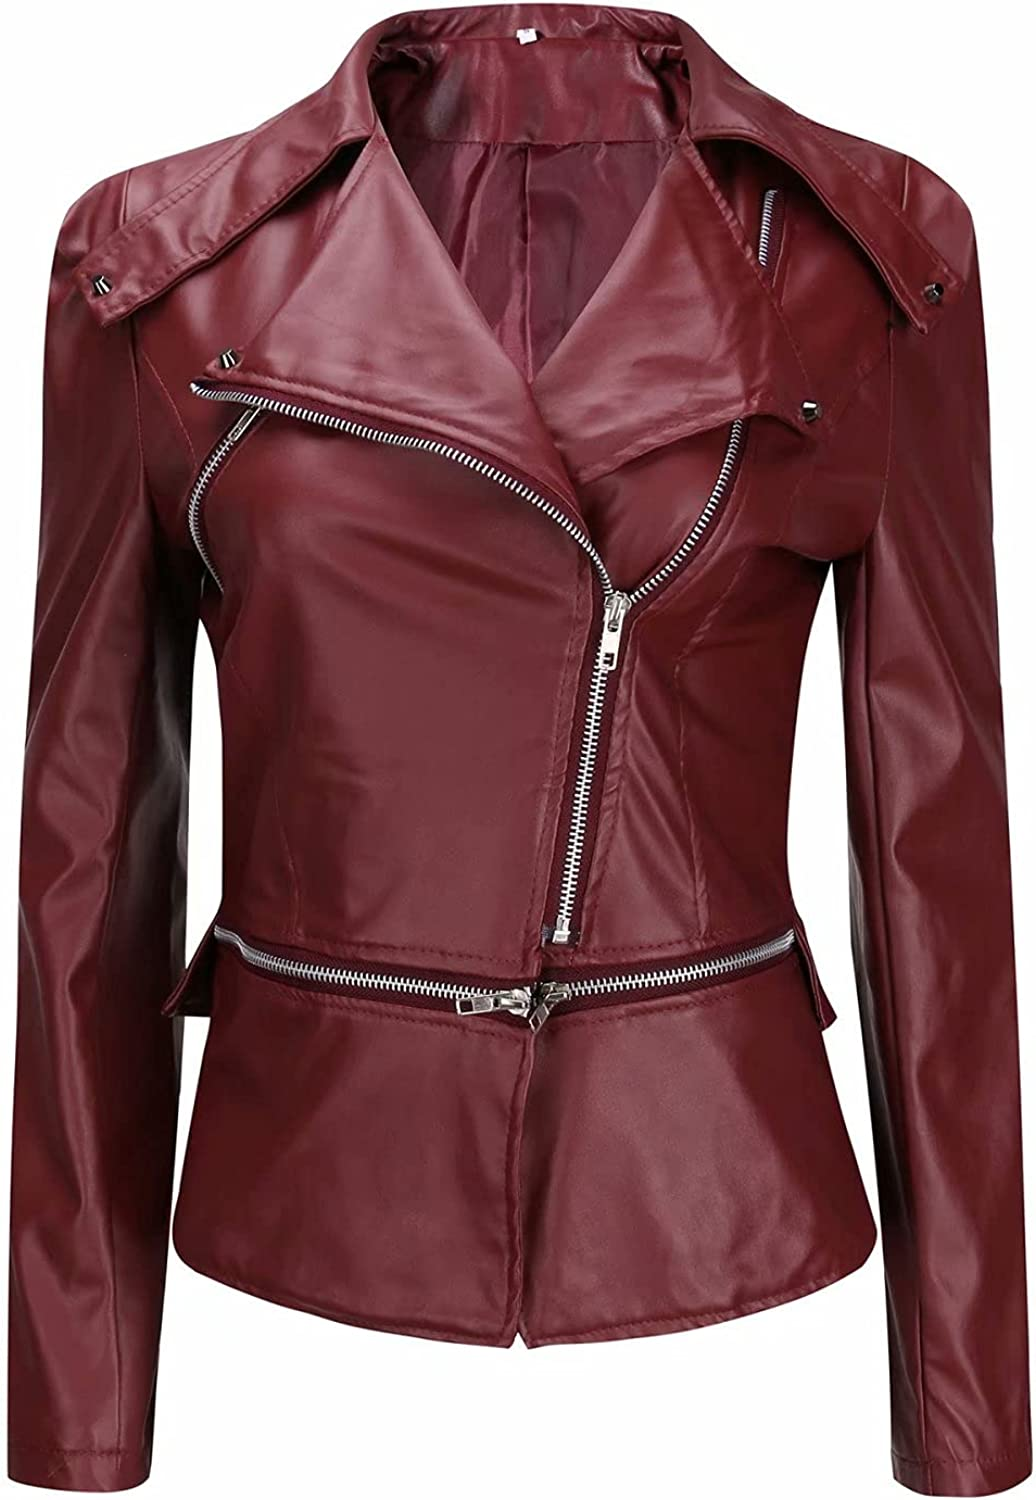 Women's jacket - elegant slim fit synthetic leather outdoor windproof stand-up collar leather jacket,transition coat